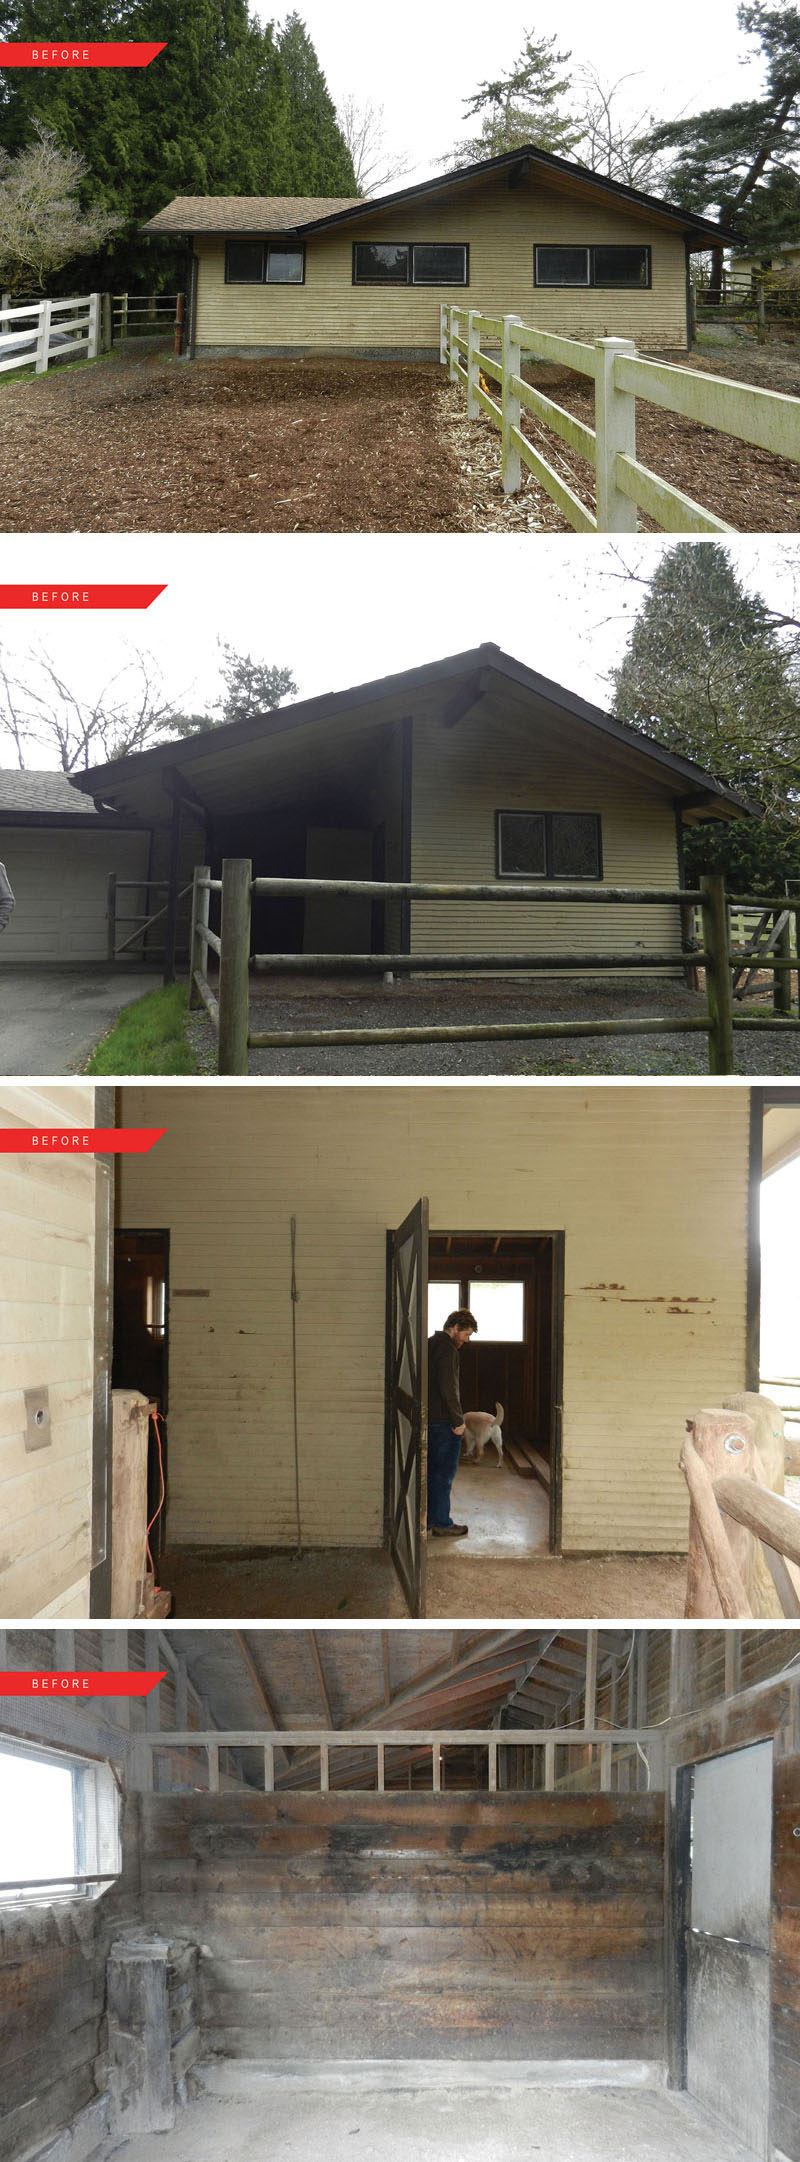 Before After A Horse Stable Is Transformed Into Space For Living